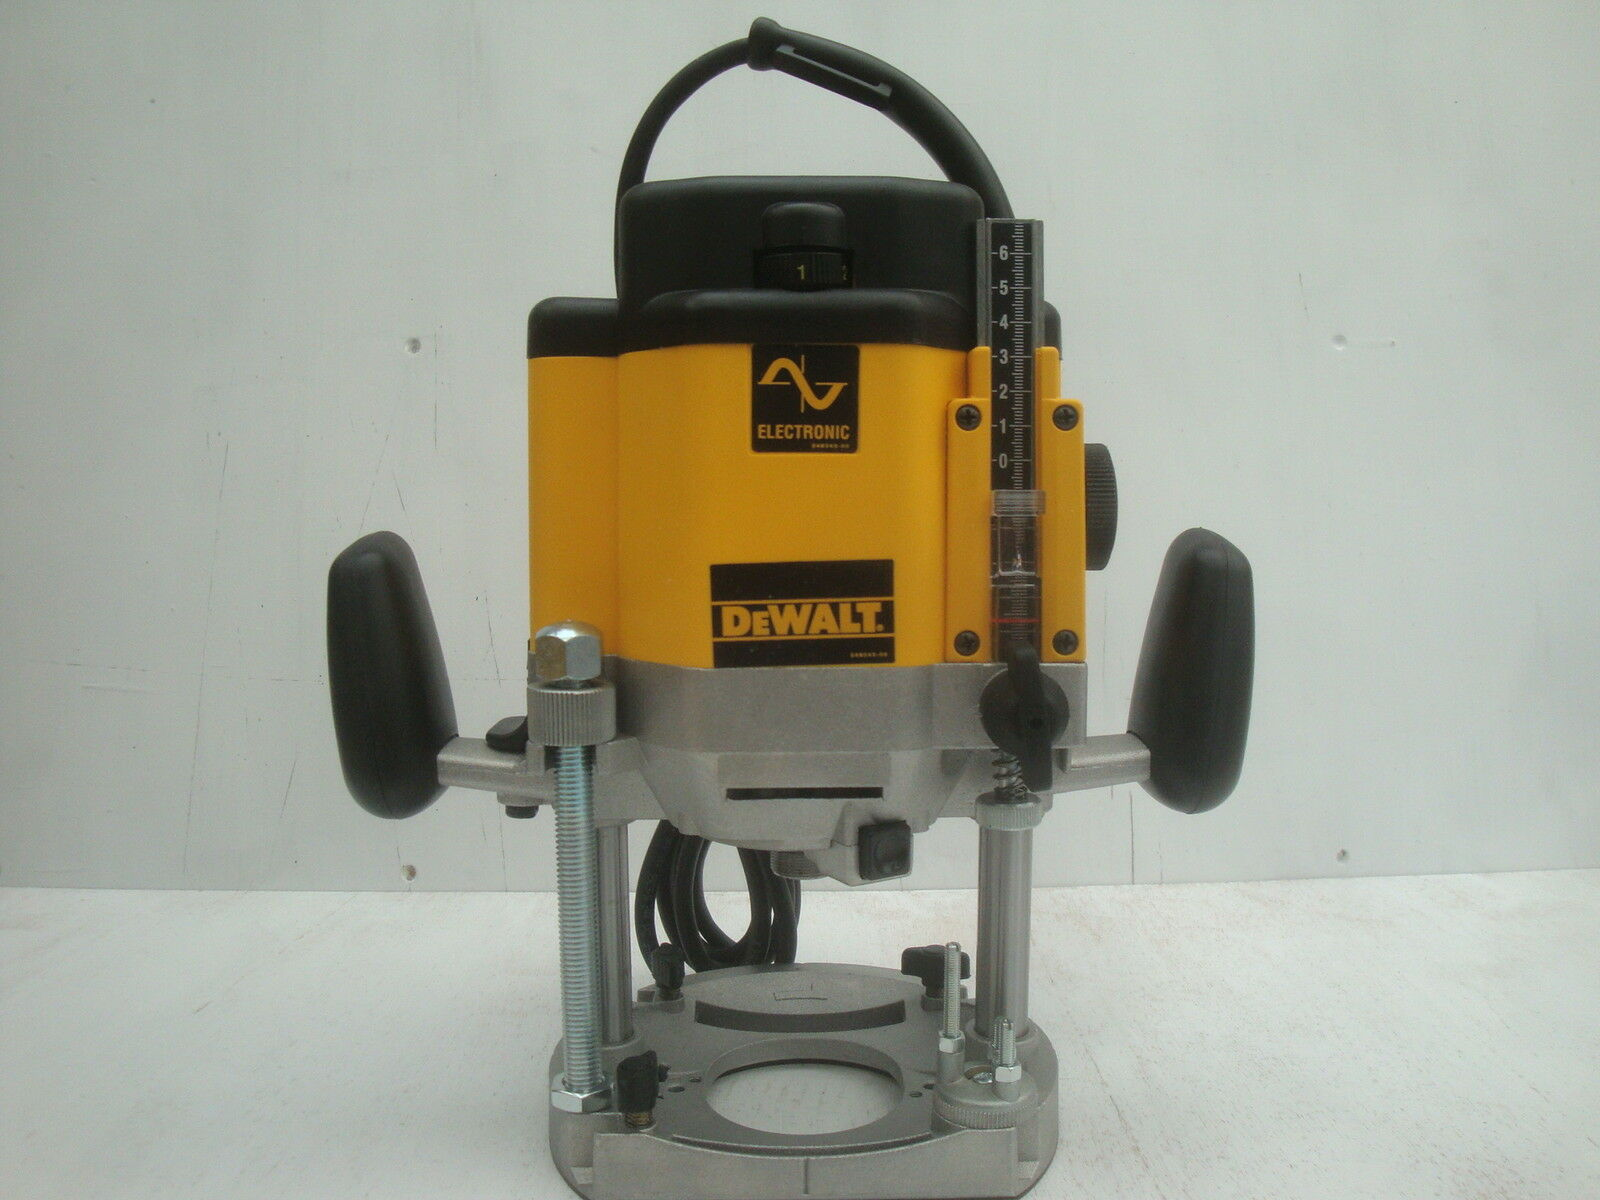 Brand new dewalt dw625 dw625e plunge router 110v router only 1 of 1 see more greentooth Gallery